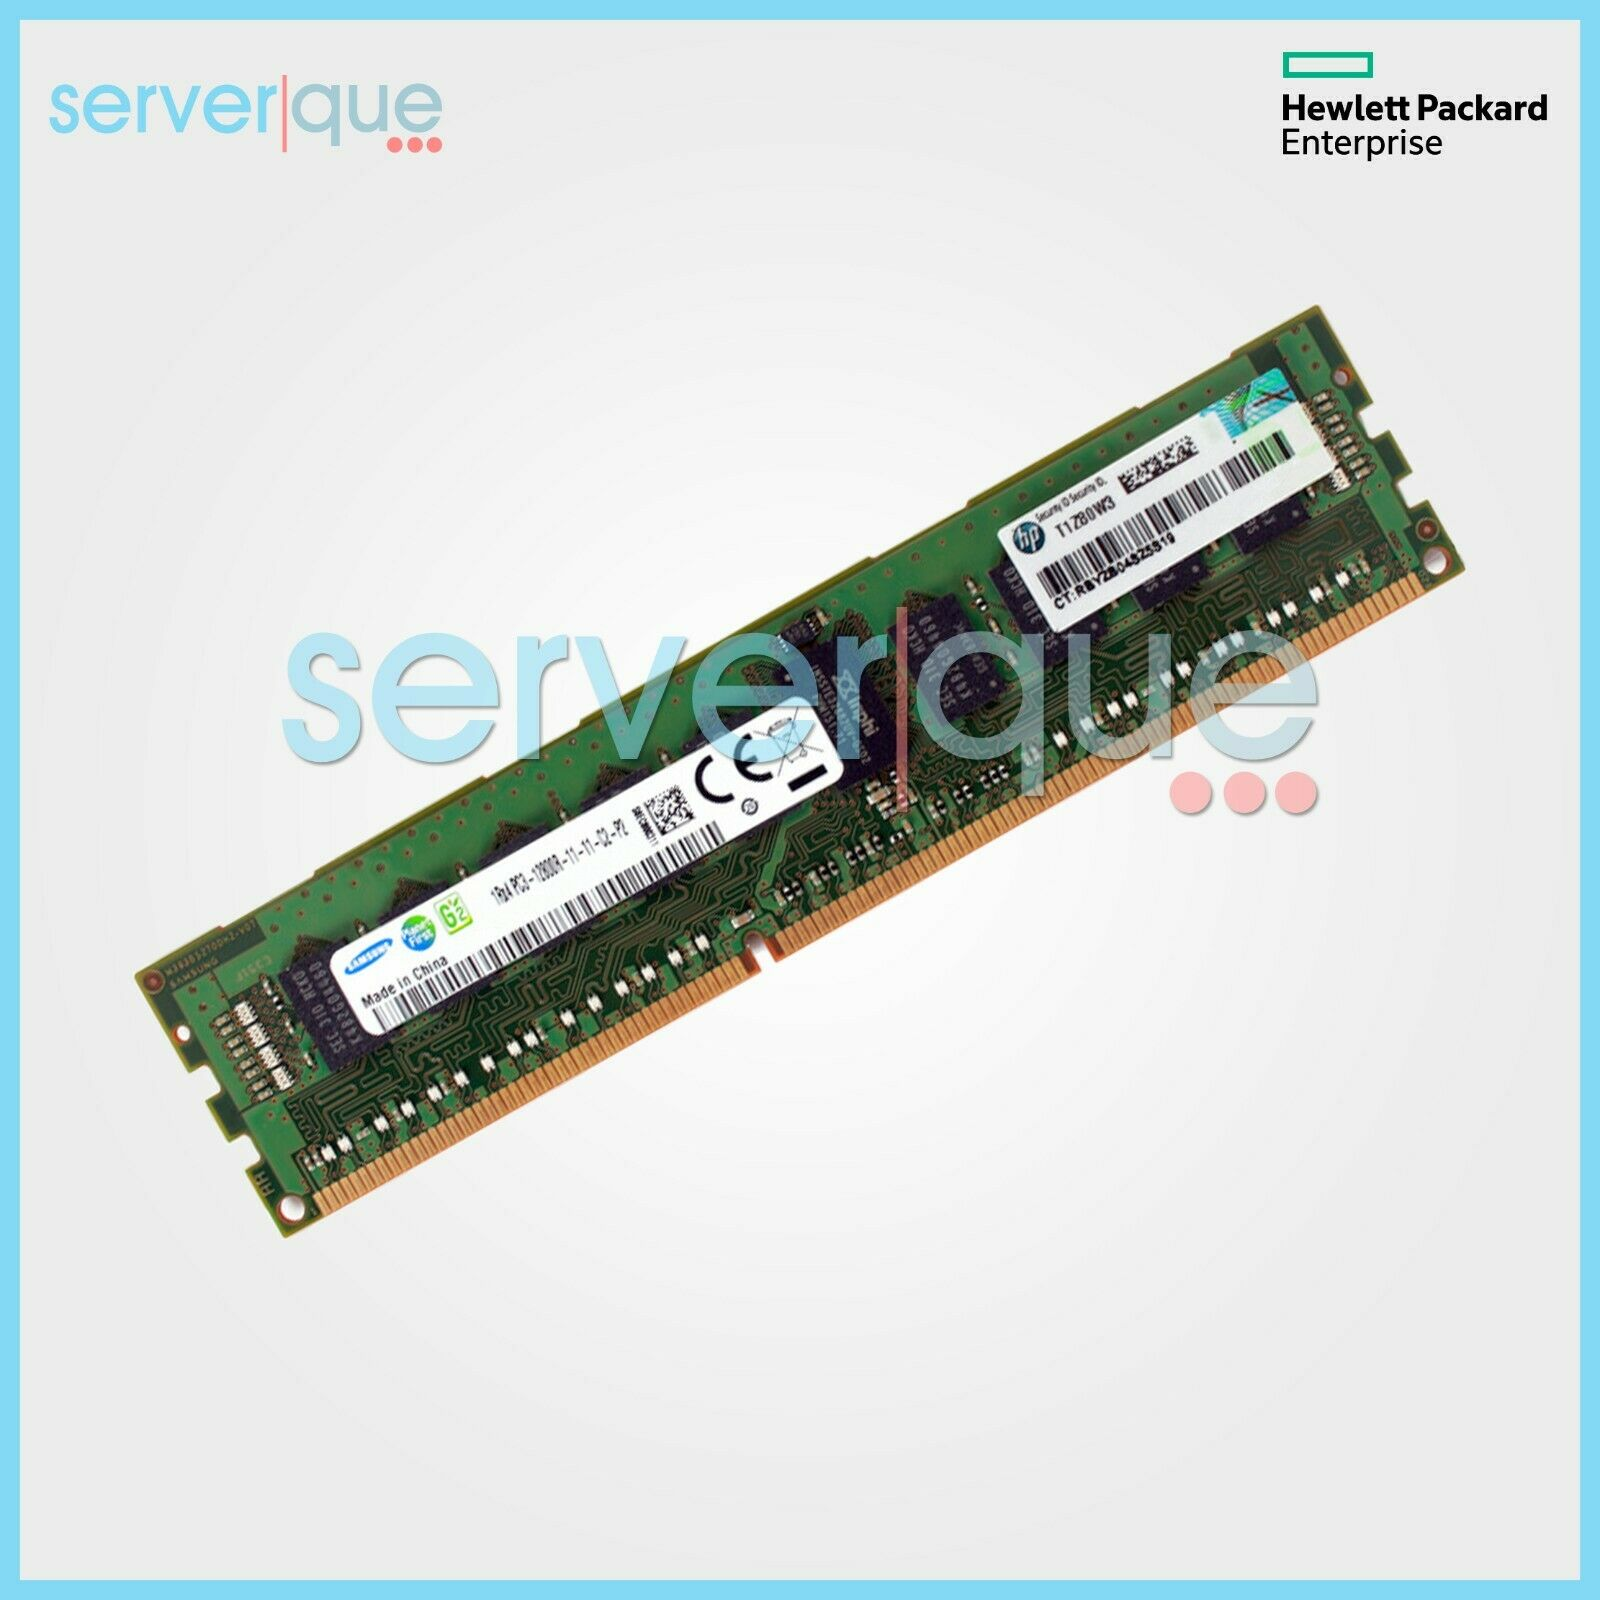 parts-quick 8GB Memory for Supermicro SuperServer 6017R-73THDP DDR3 1333MHz PC3-10600 ECC Registered Server DIMM